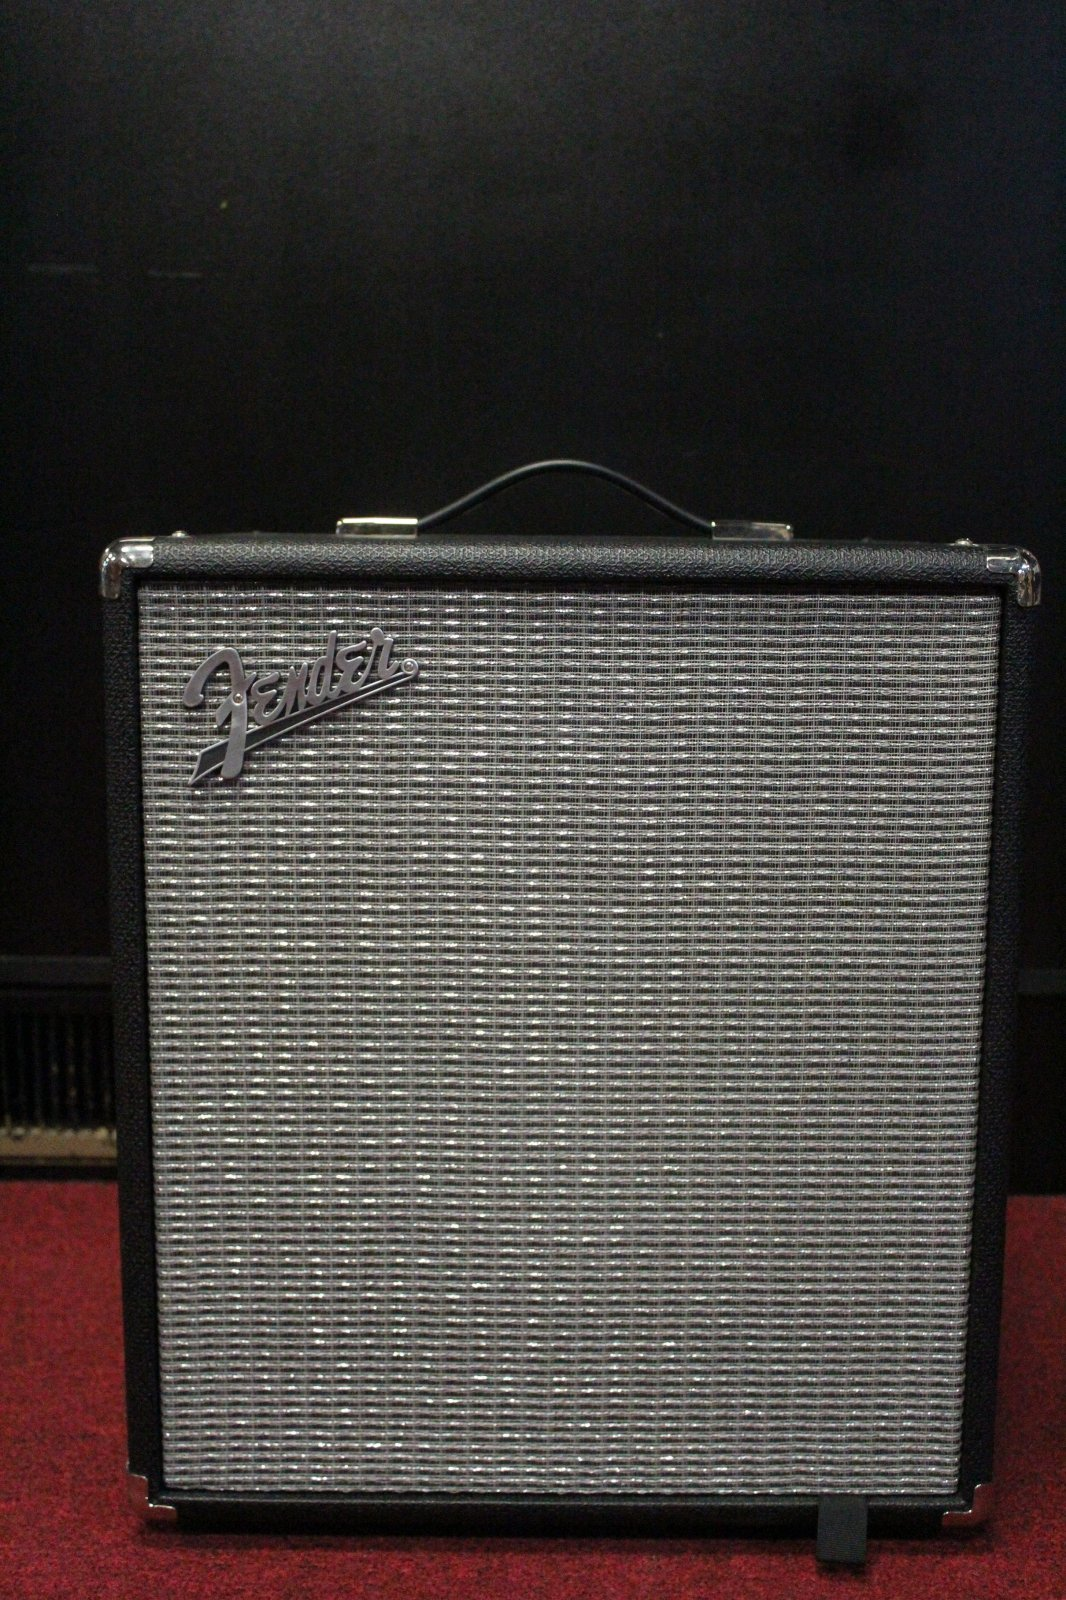 FENDER RUMBLE 100 BASS AMP